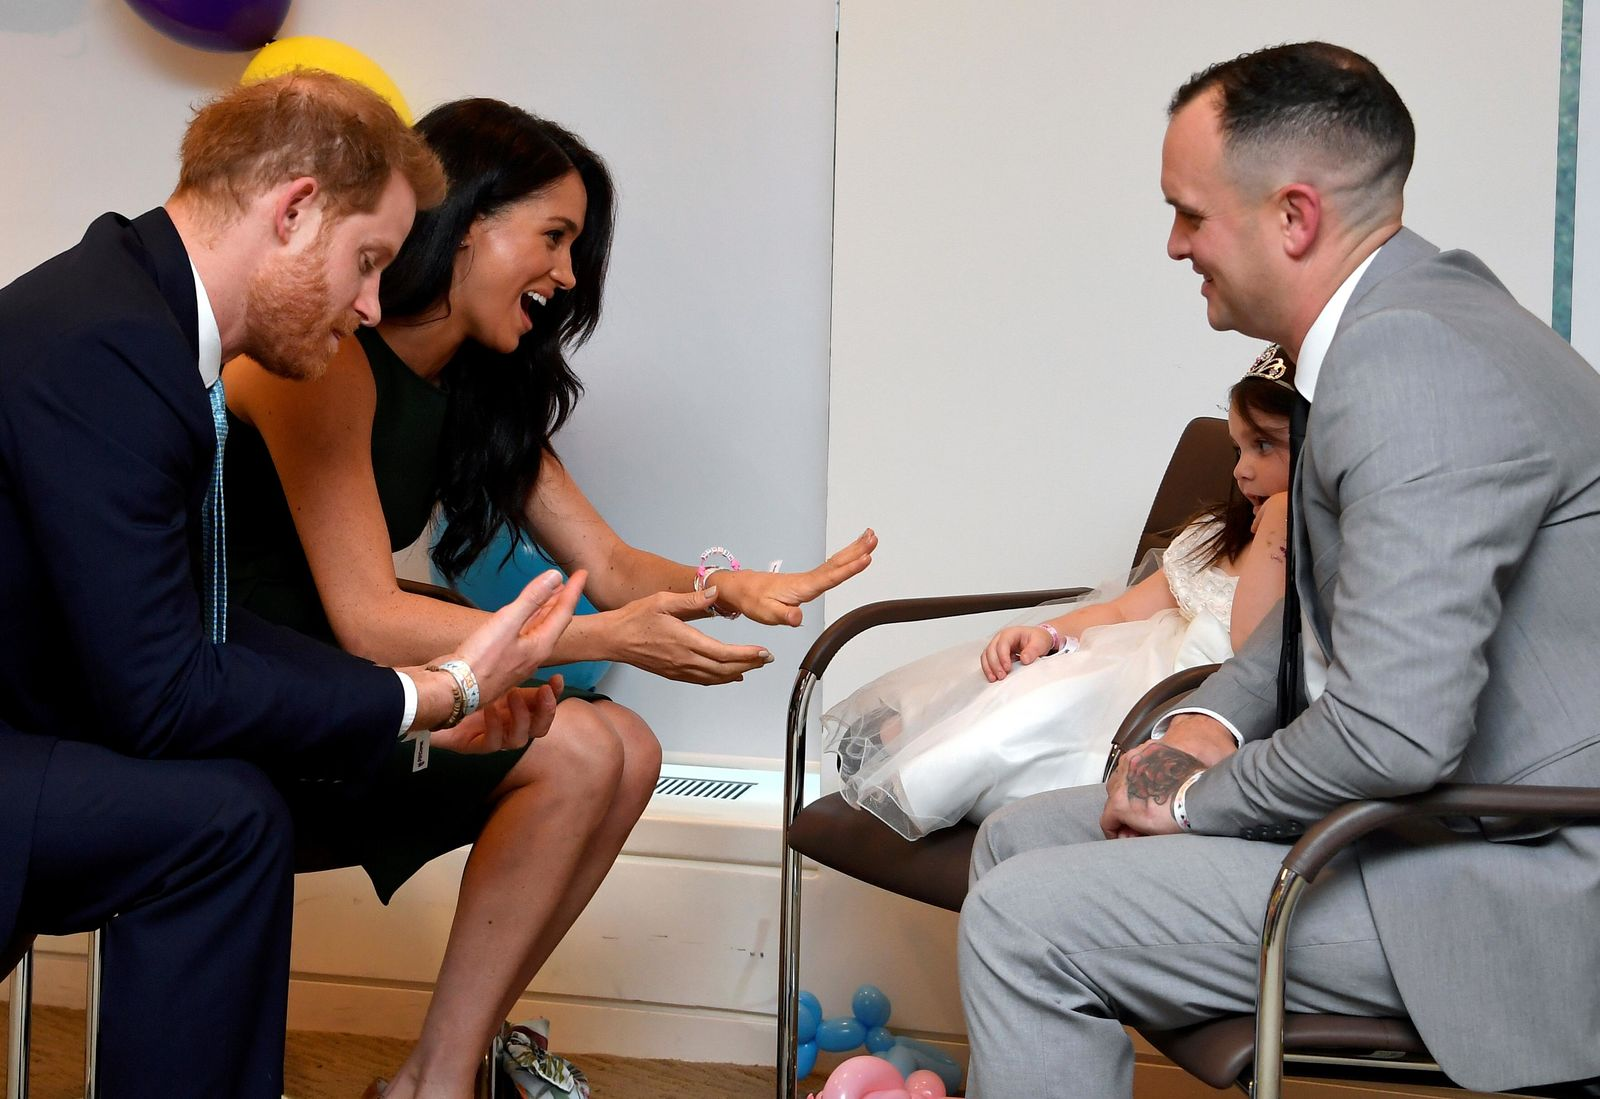 Britain's Prince Harry and Duchess of Sussex, left, react as they are given bracelets by Lyla-Rose O'Donovan and her father Paul, during the annual WellChild Awards in London, Tuesday Oct. 15, 2019. The WellChild Awards celebrate the inspiring qualities of some of the country's seriously ill young people.(Toby Melville/Pool via AP)